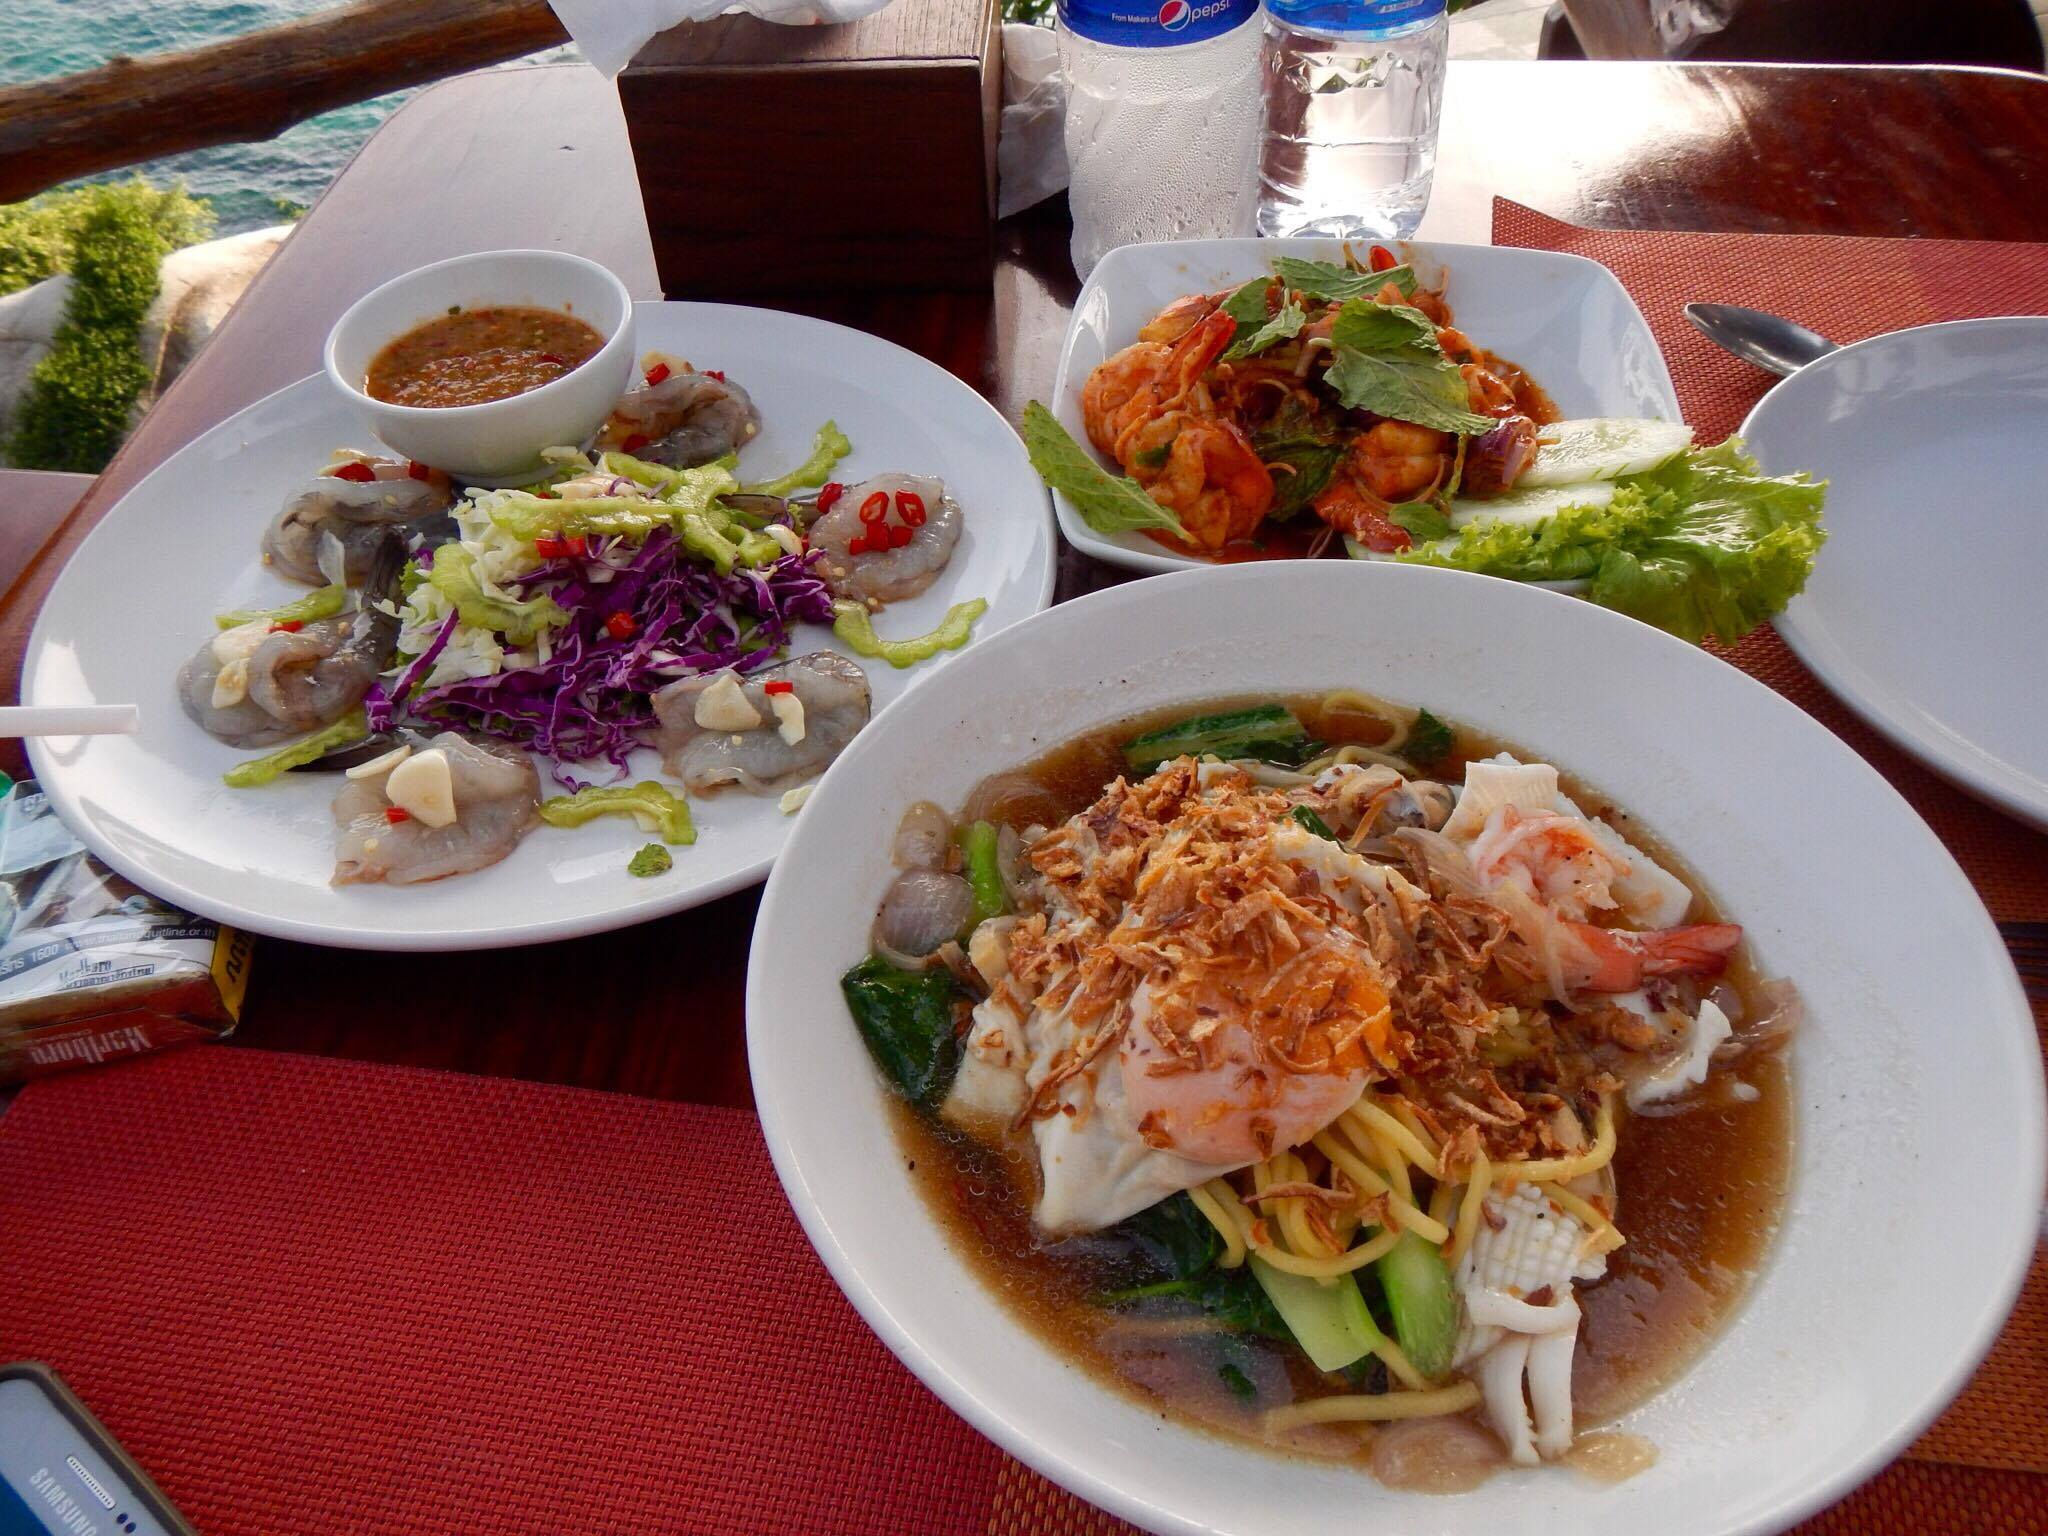 Seafood Phuket Prawns Thai Food Spicy Broth Soup Vegetables